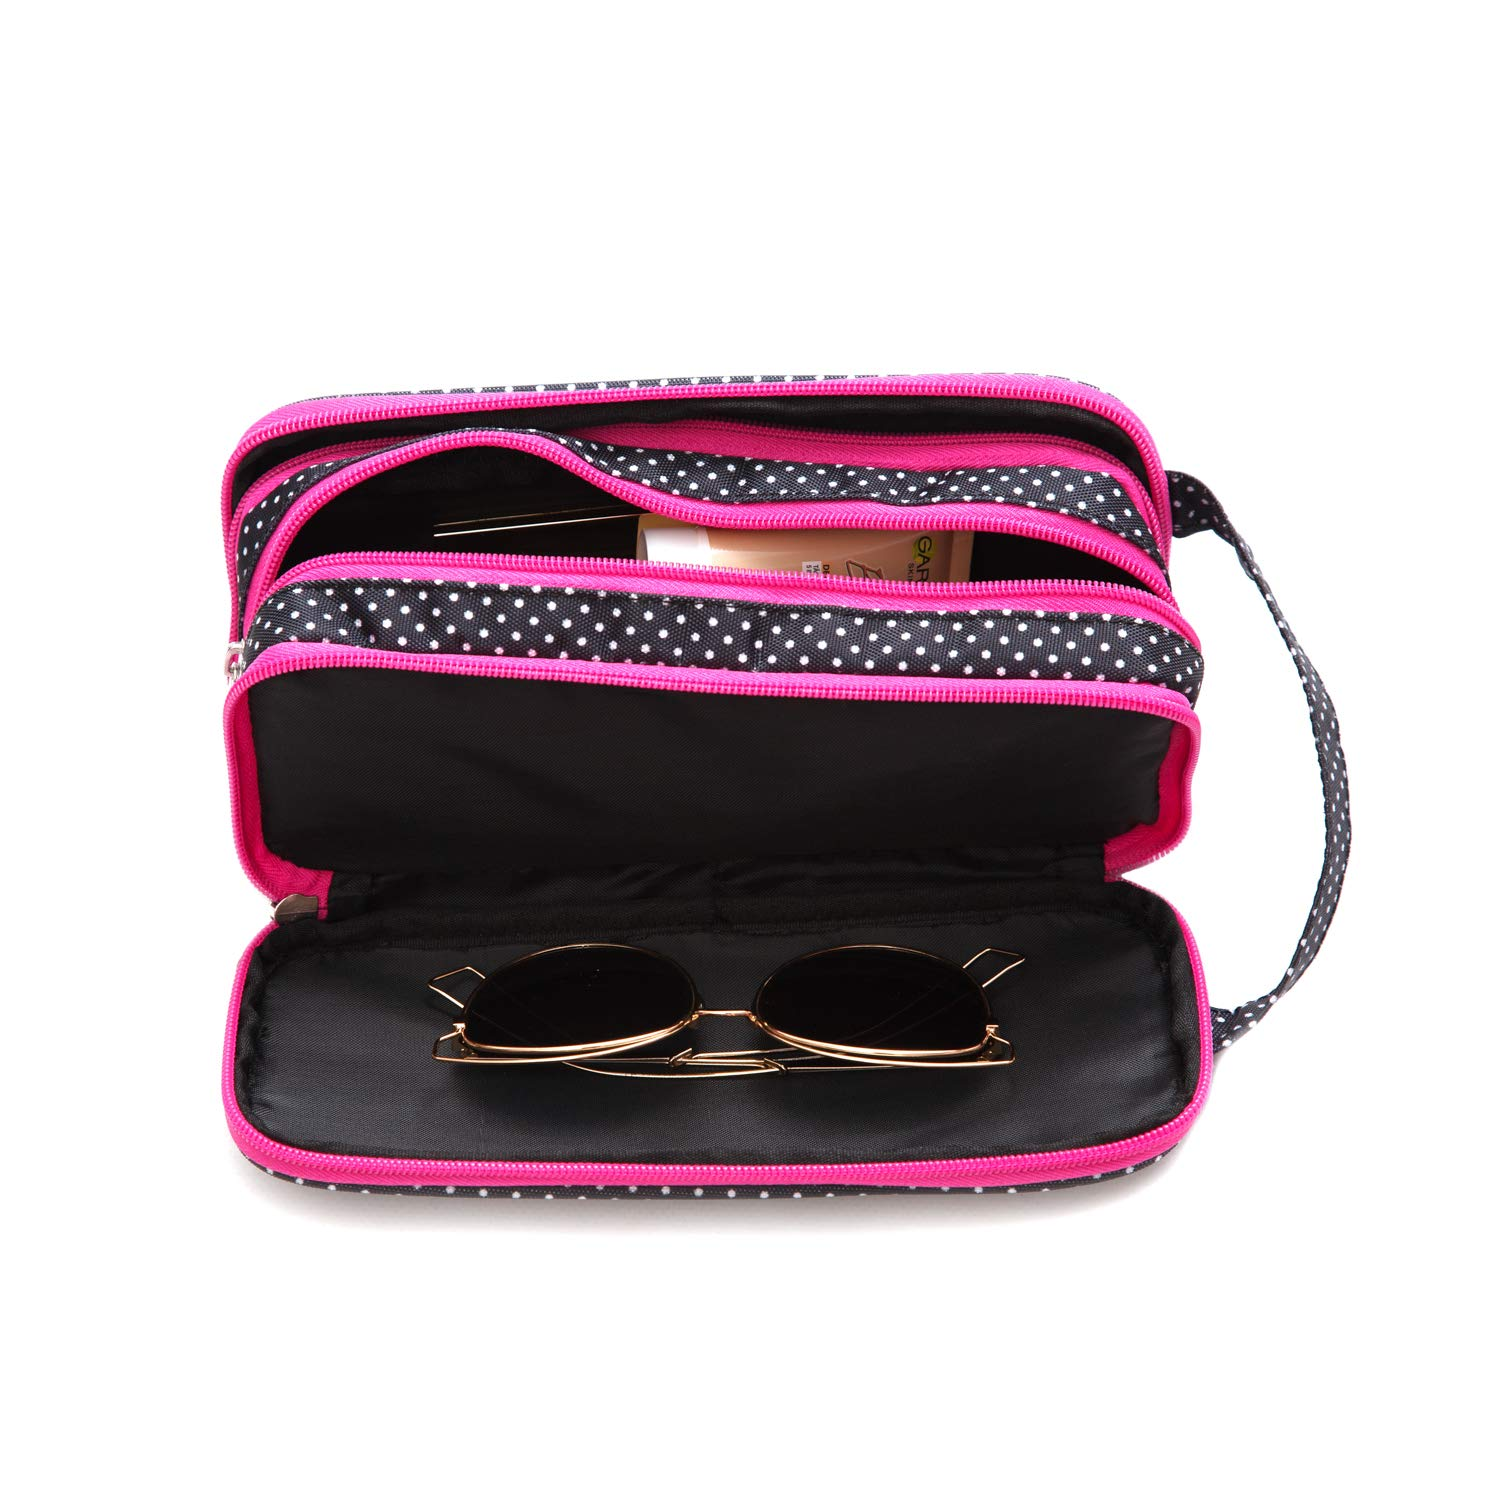 Amazon.com : Versatile Travel Makeup Bag - Large Cosmetic Pouch - Travel Organizer For Your Cosmetics : Beauty